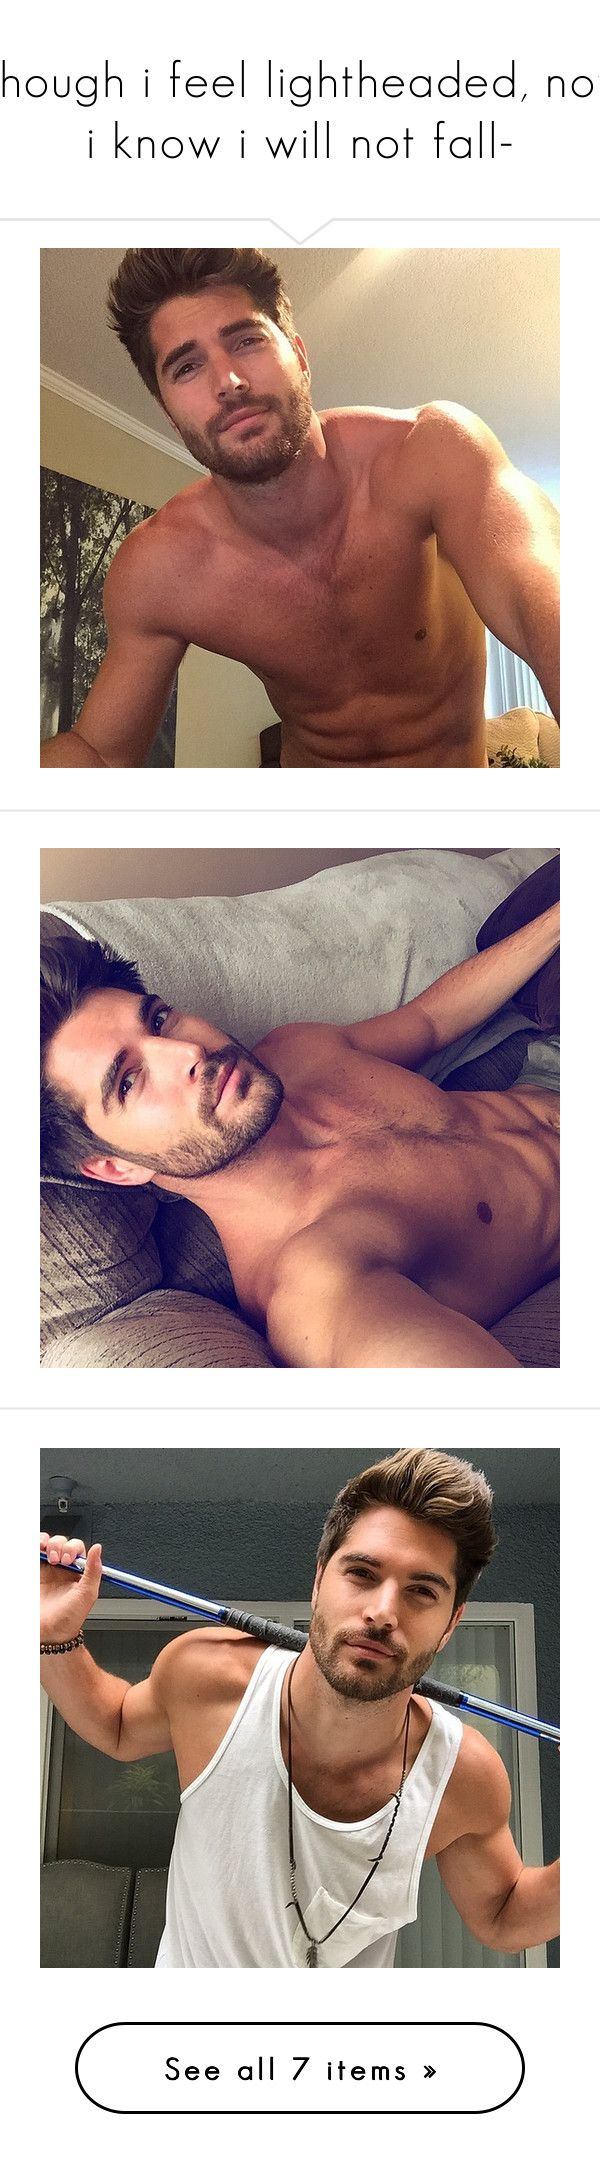 """-though i feel lightheaded, now i know i will not fall-"" by eletheroleplayer ❤ liked on Polyvore featuring nick bateman"